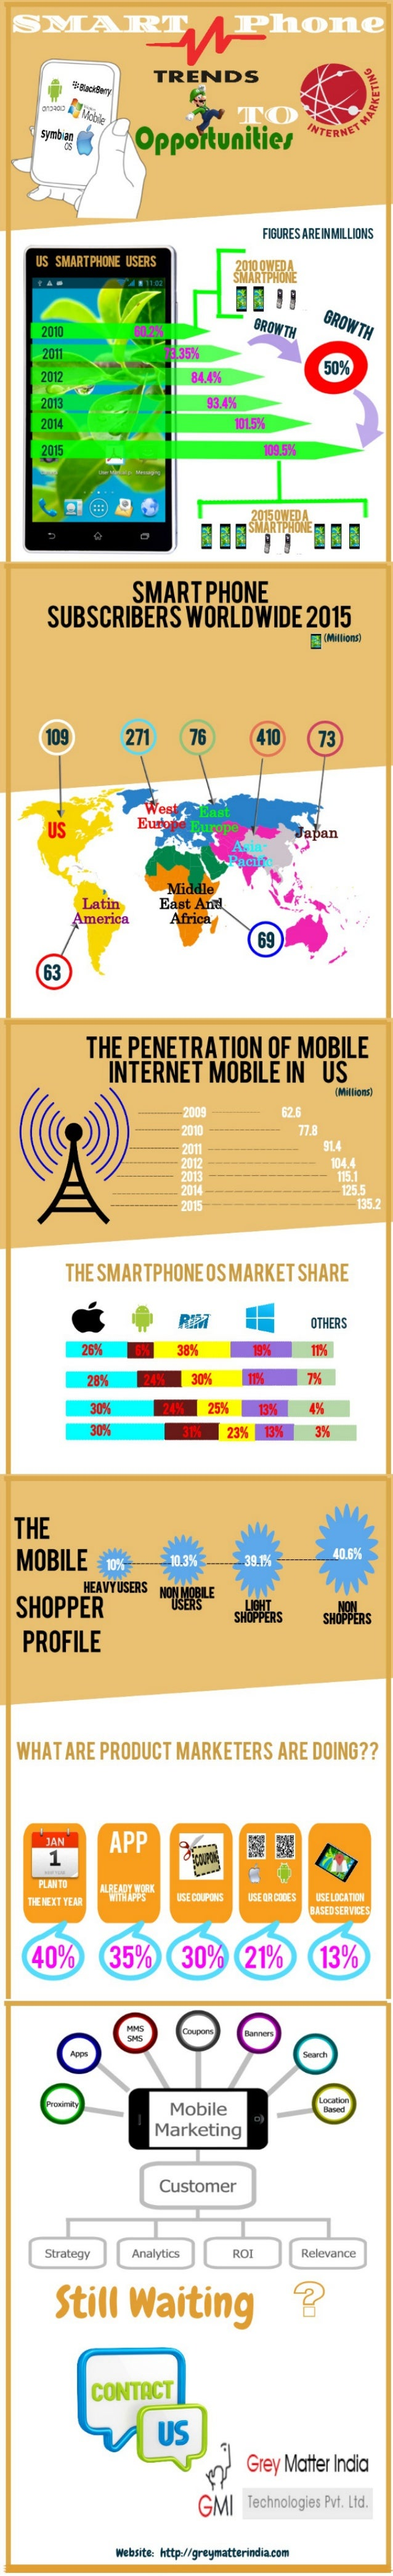 Smartphone Trends and Opportunity To Internet Marketing